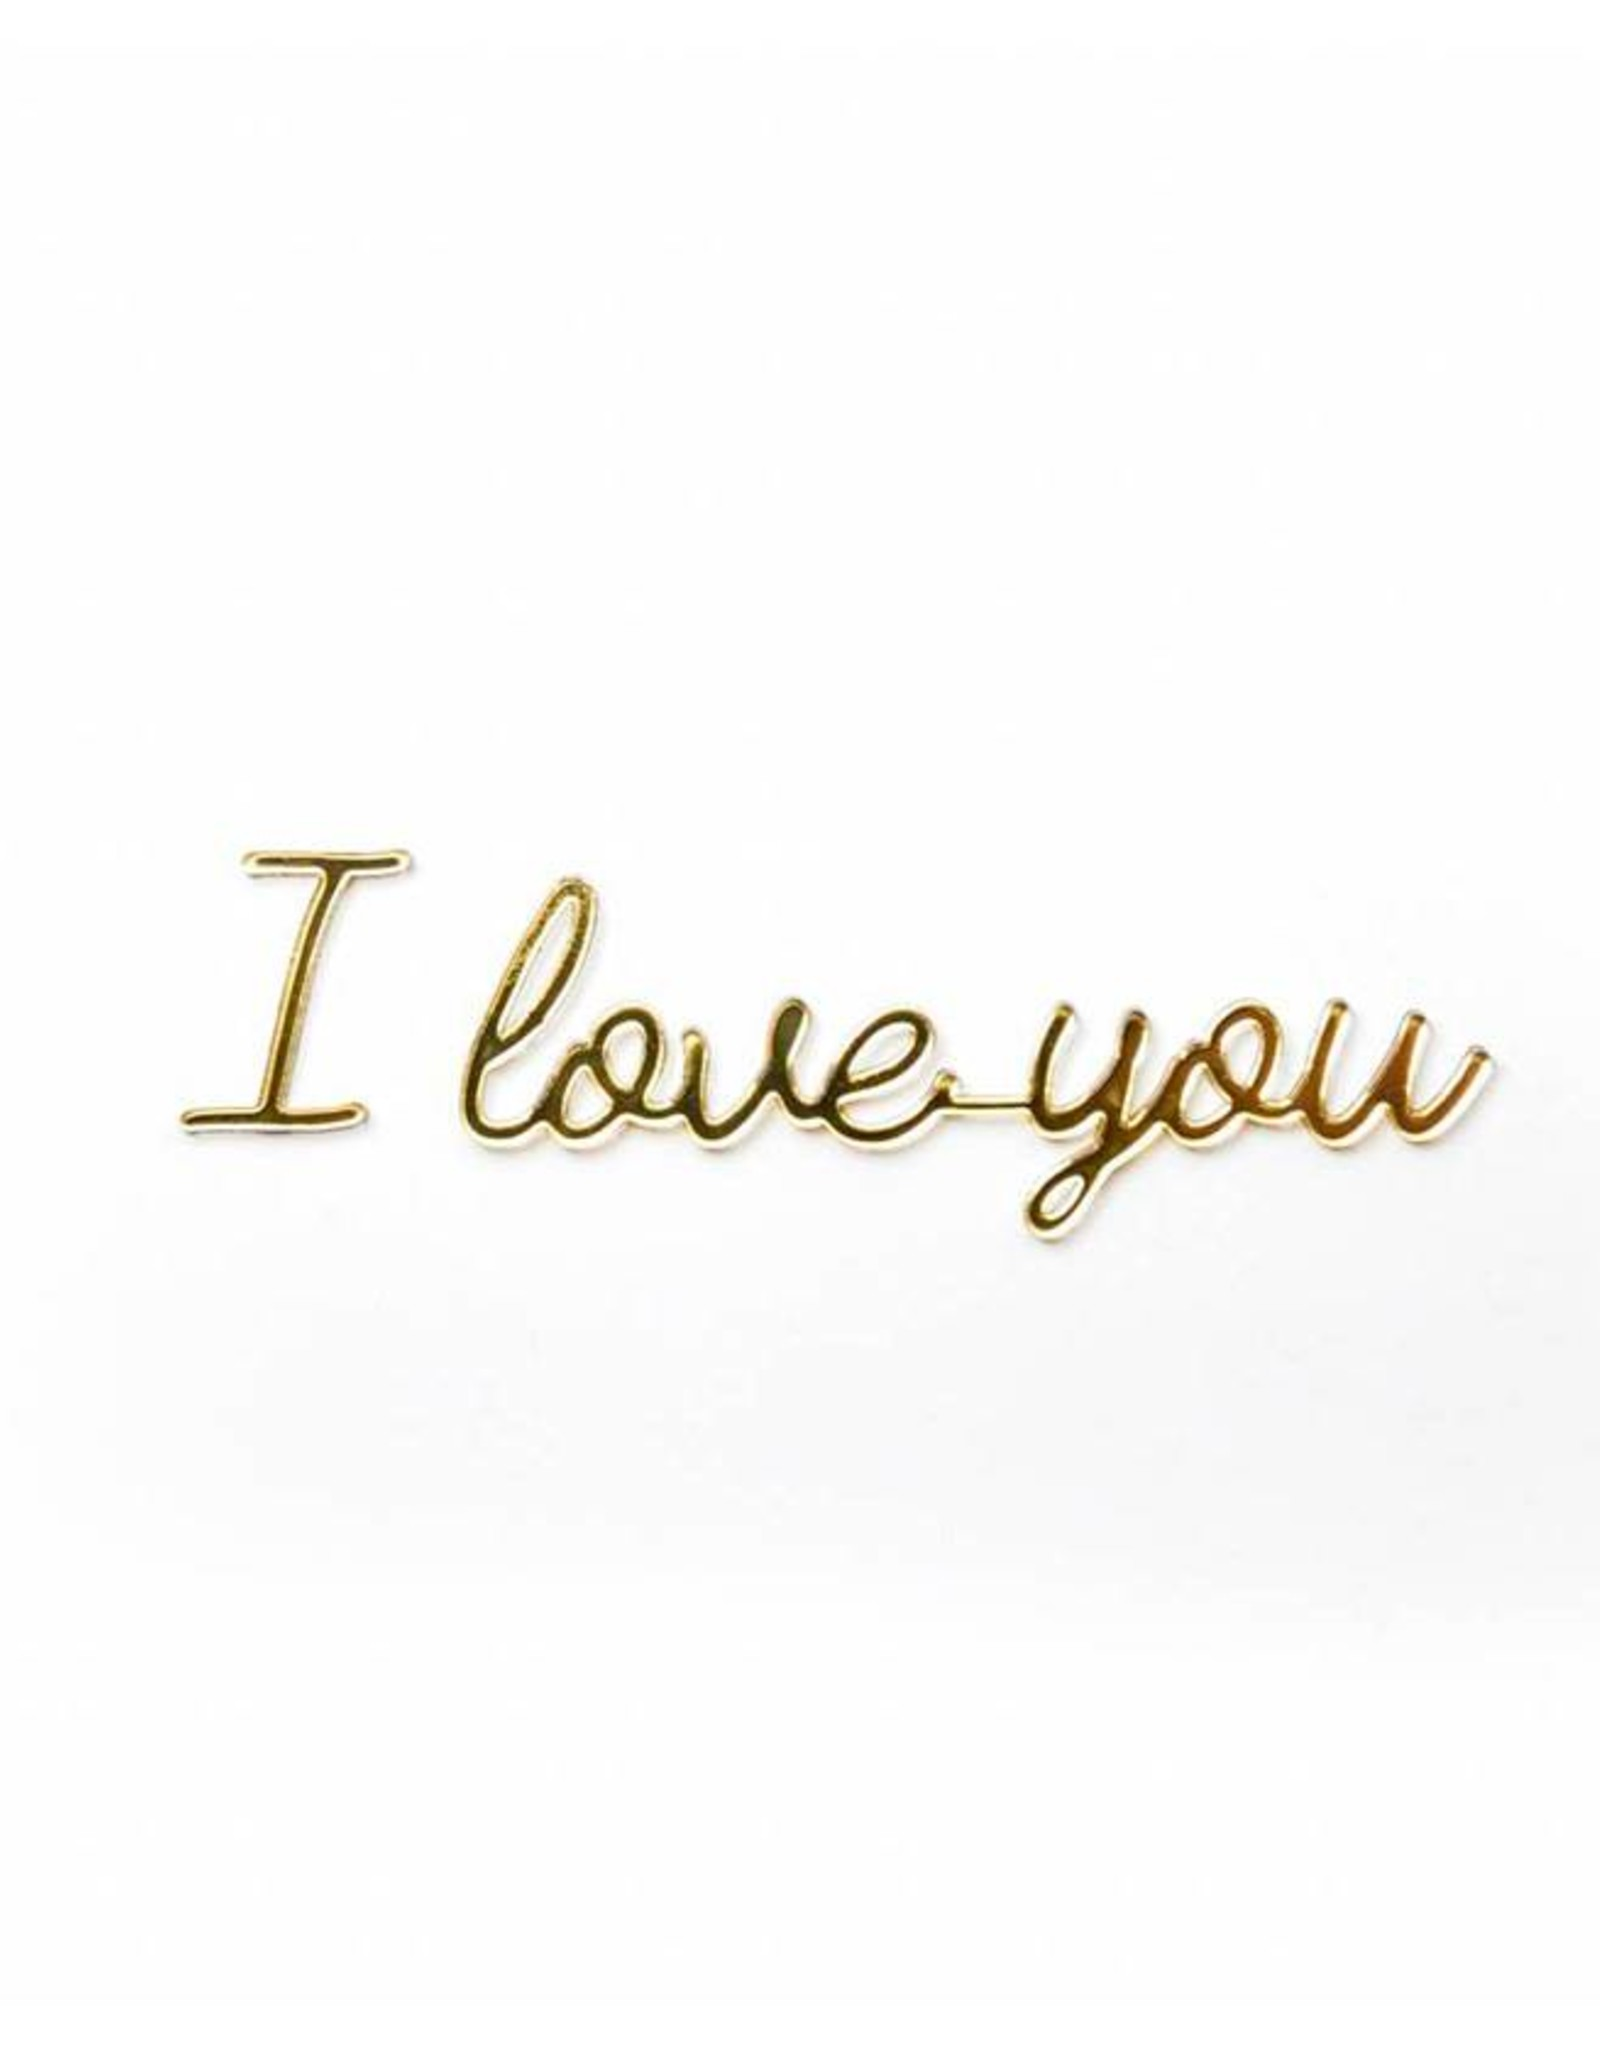 Goegezegd Quote I love you-gold